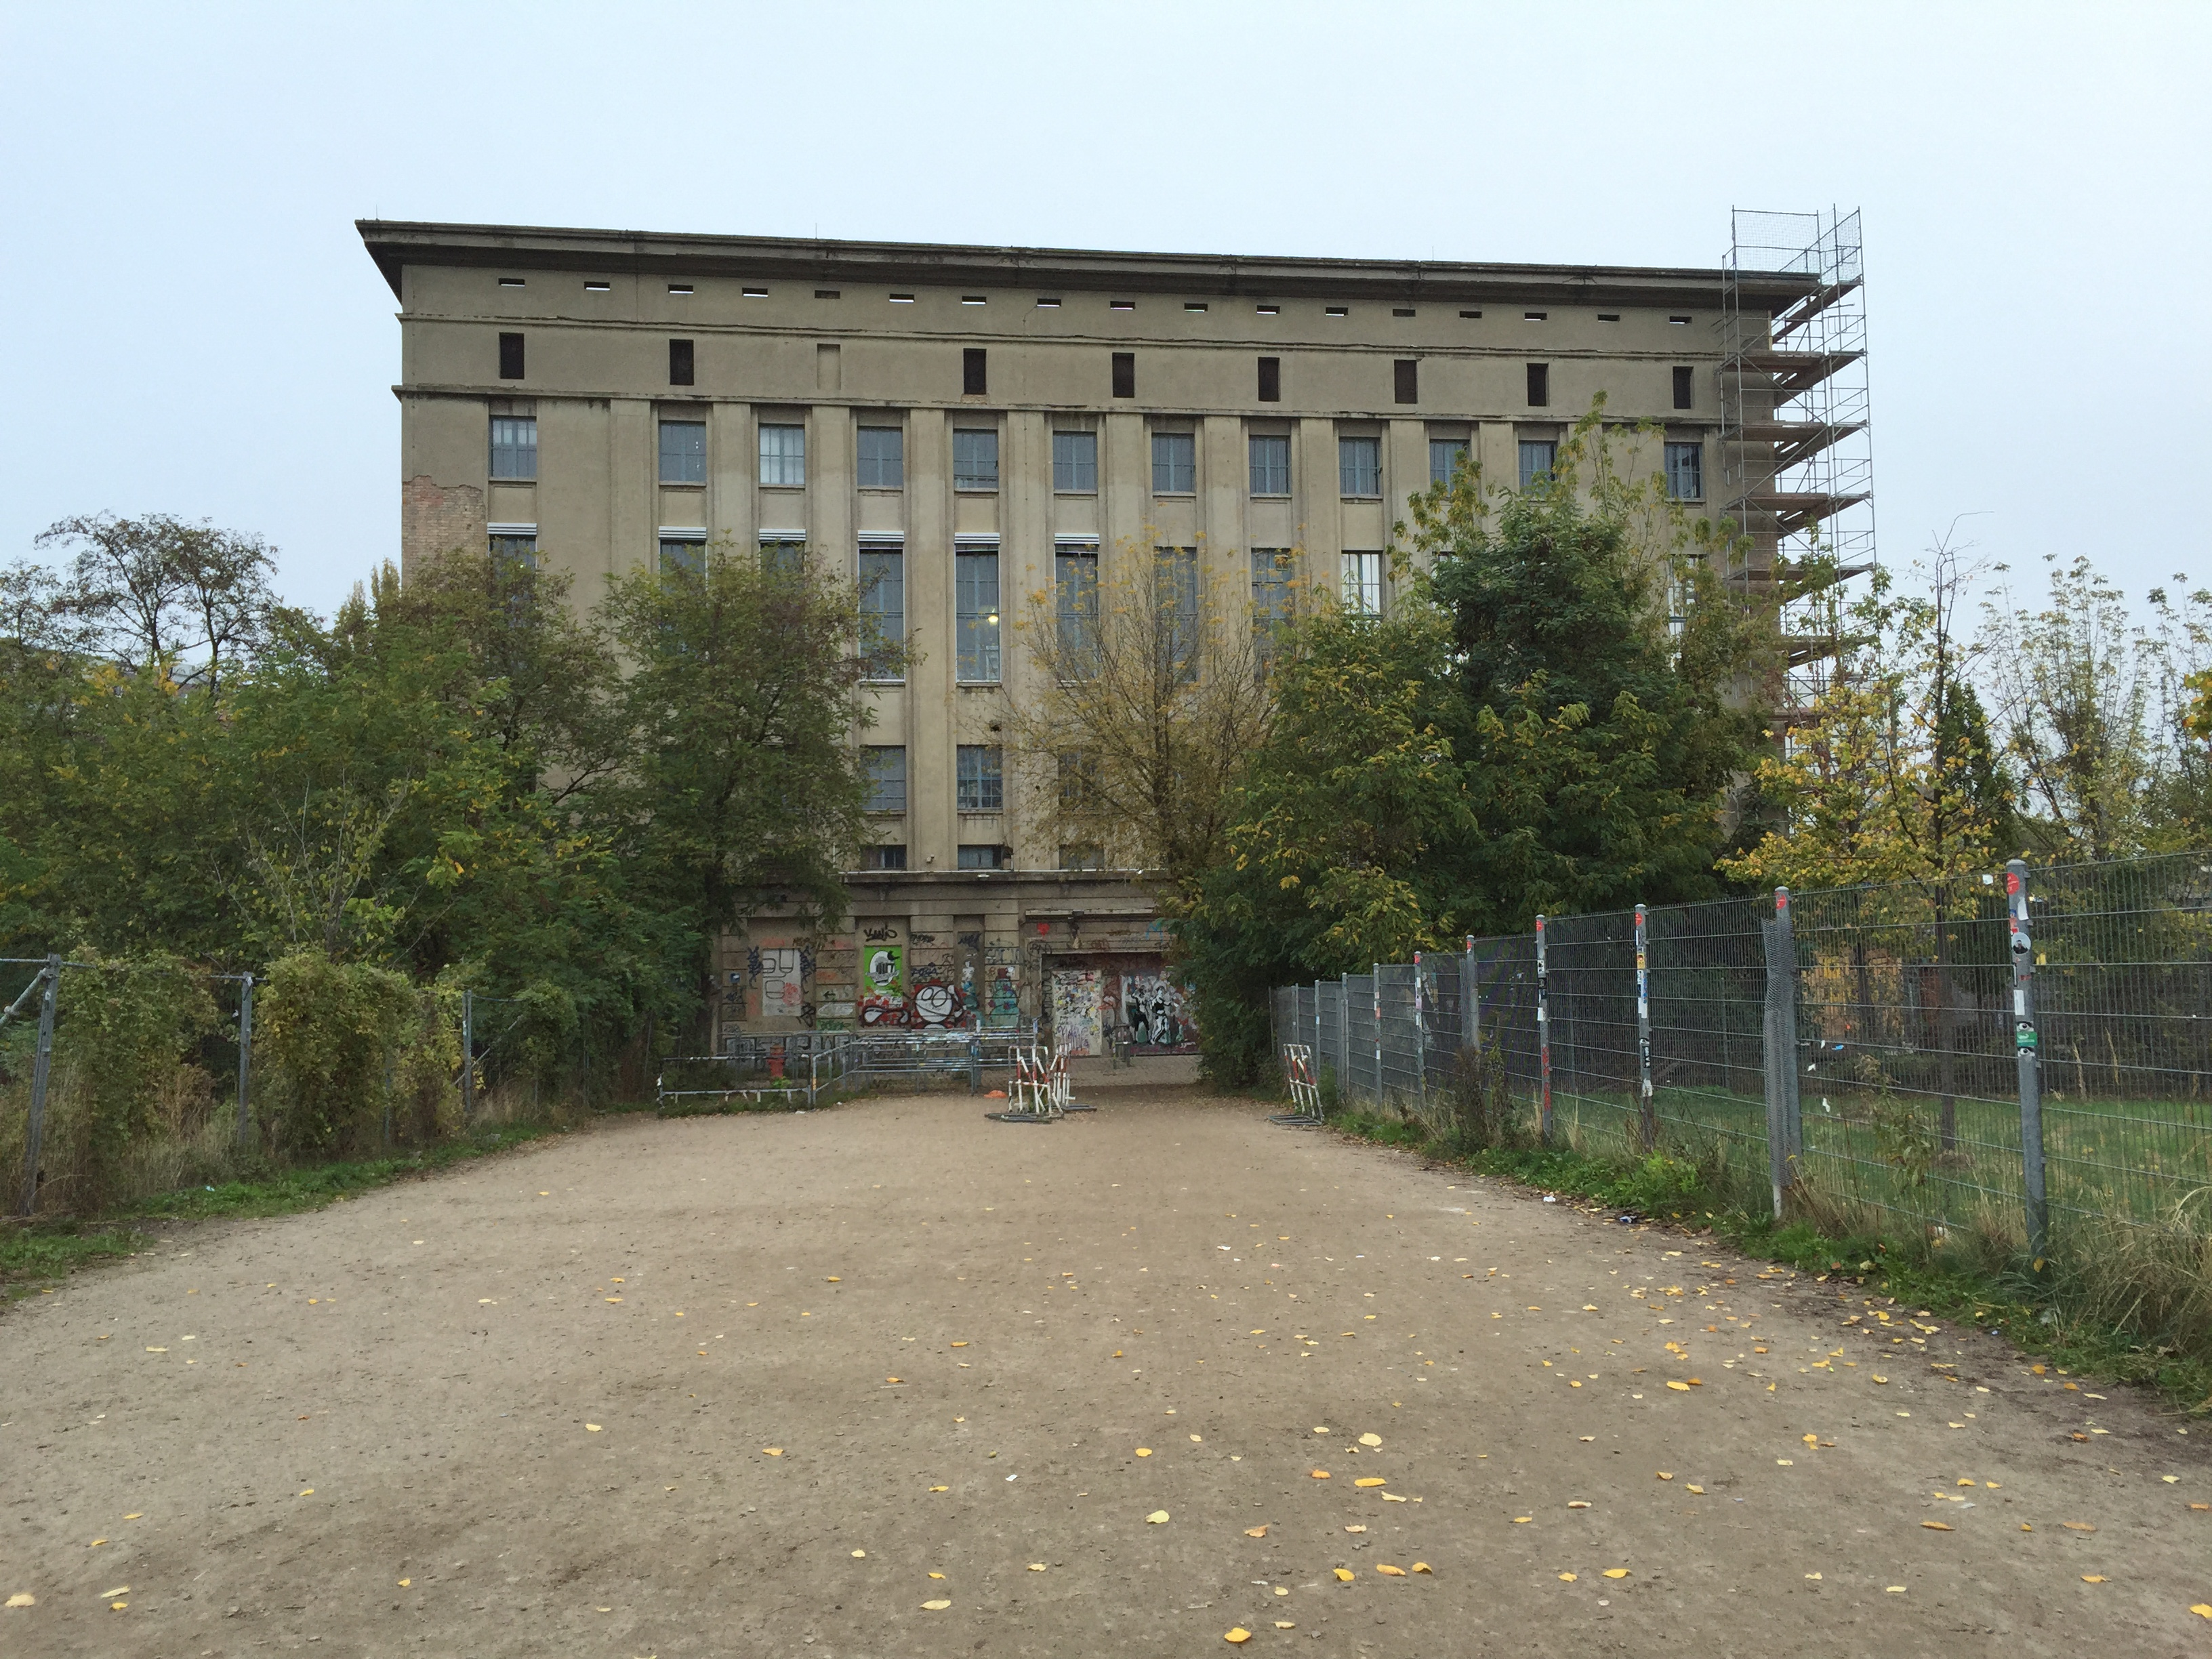 berghain, club, industrie